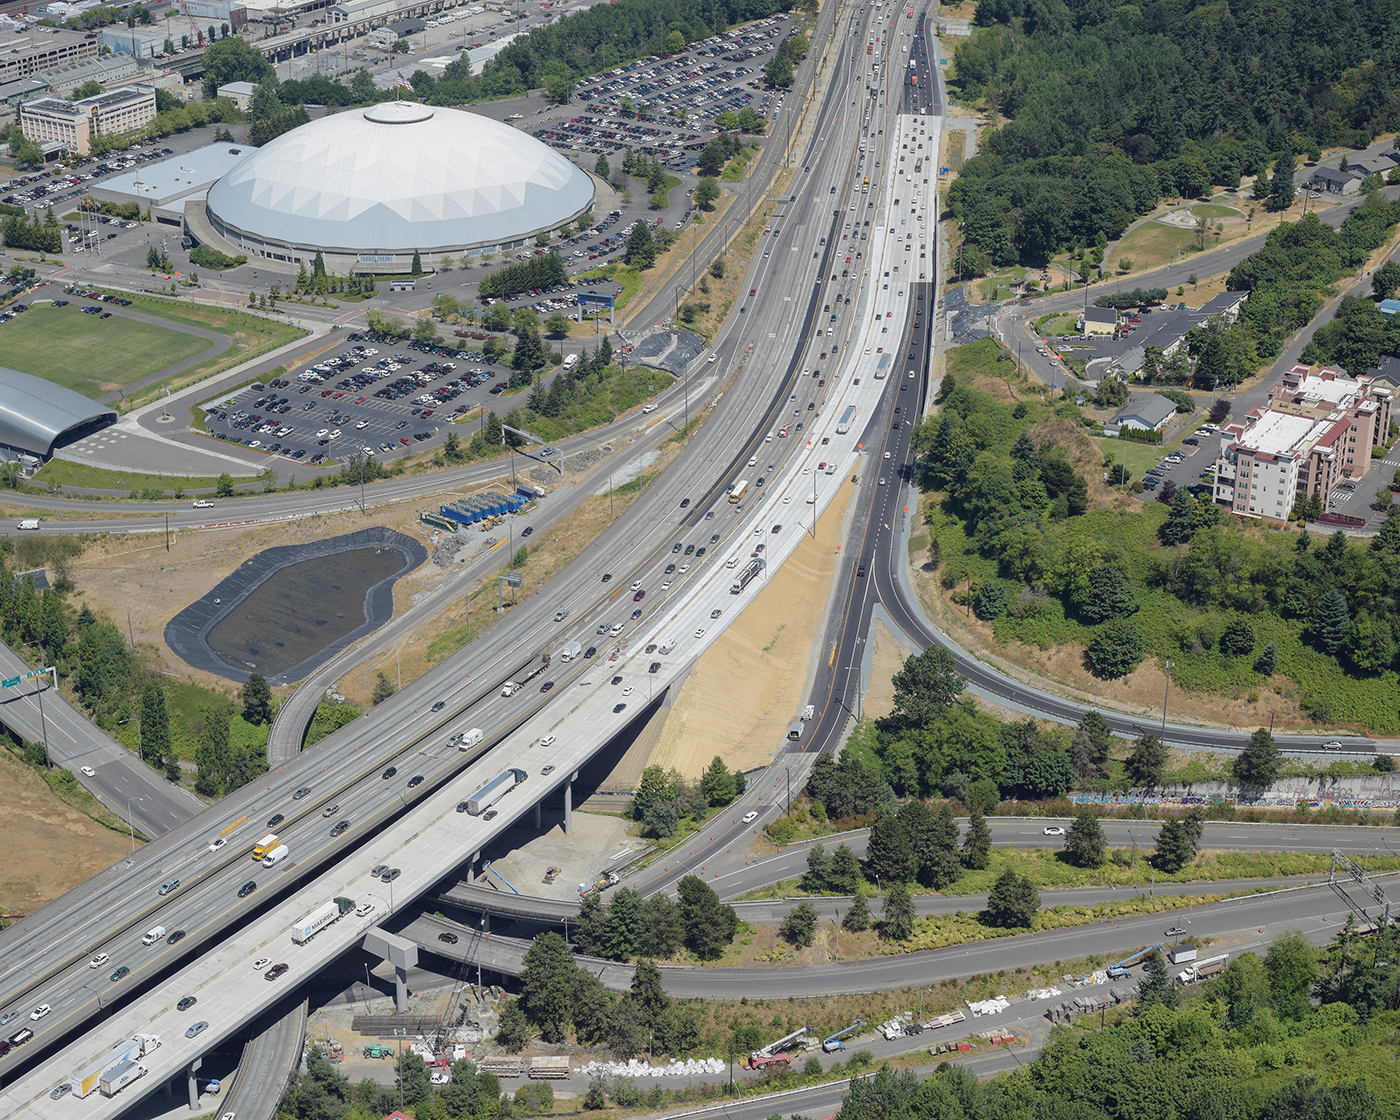 Seattle Djc Com Local Business News And Data Construction Northbound I 5 Lanes Open In Tacoma